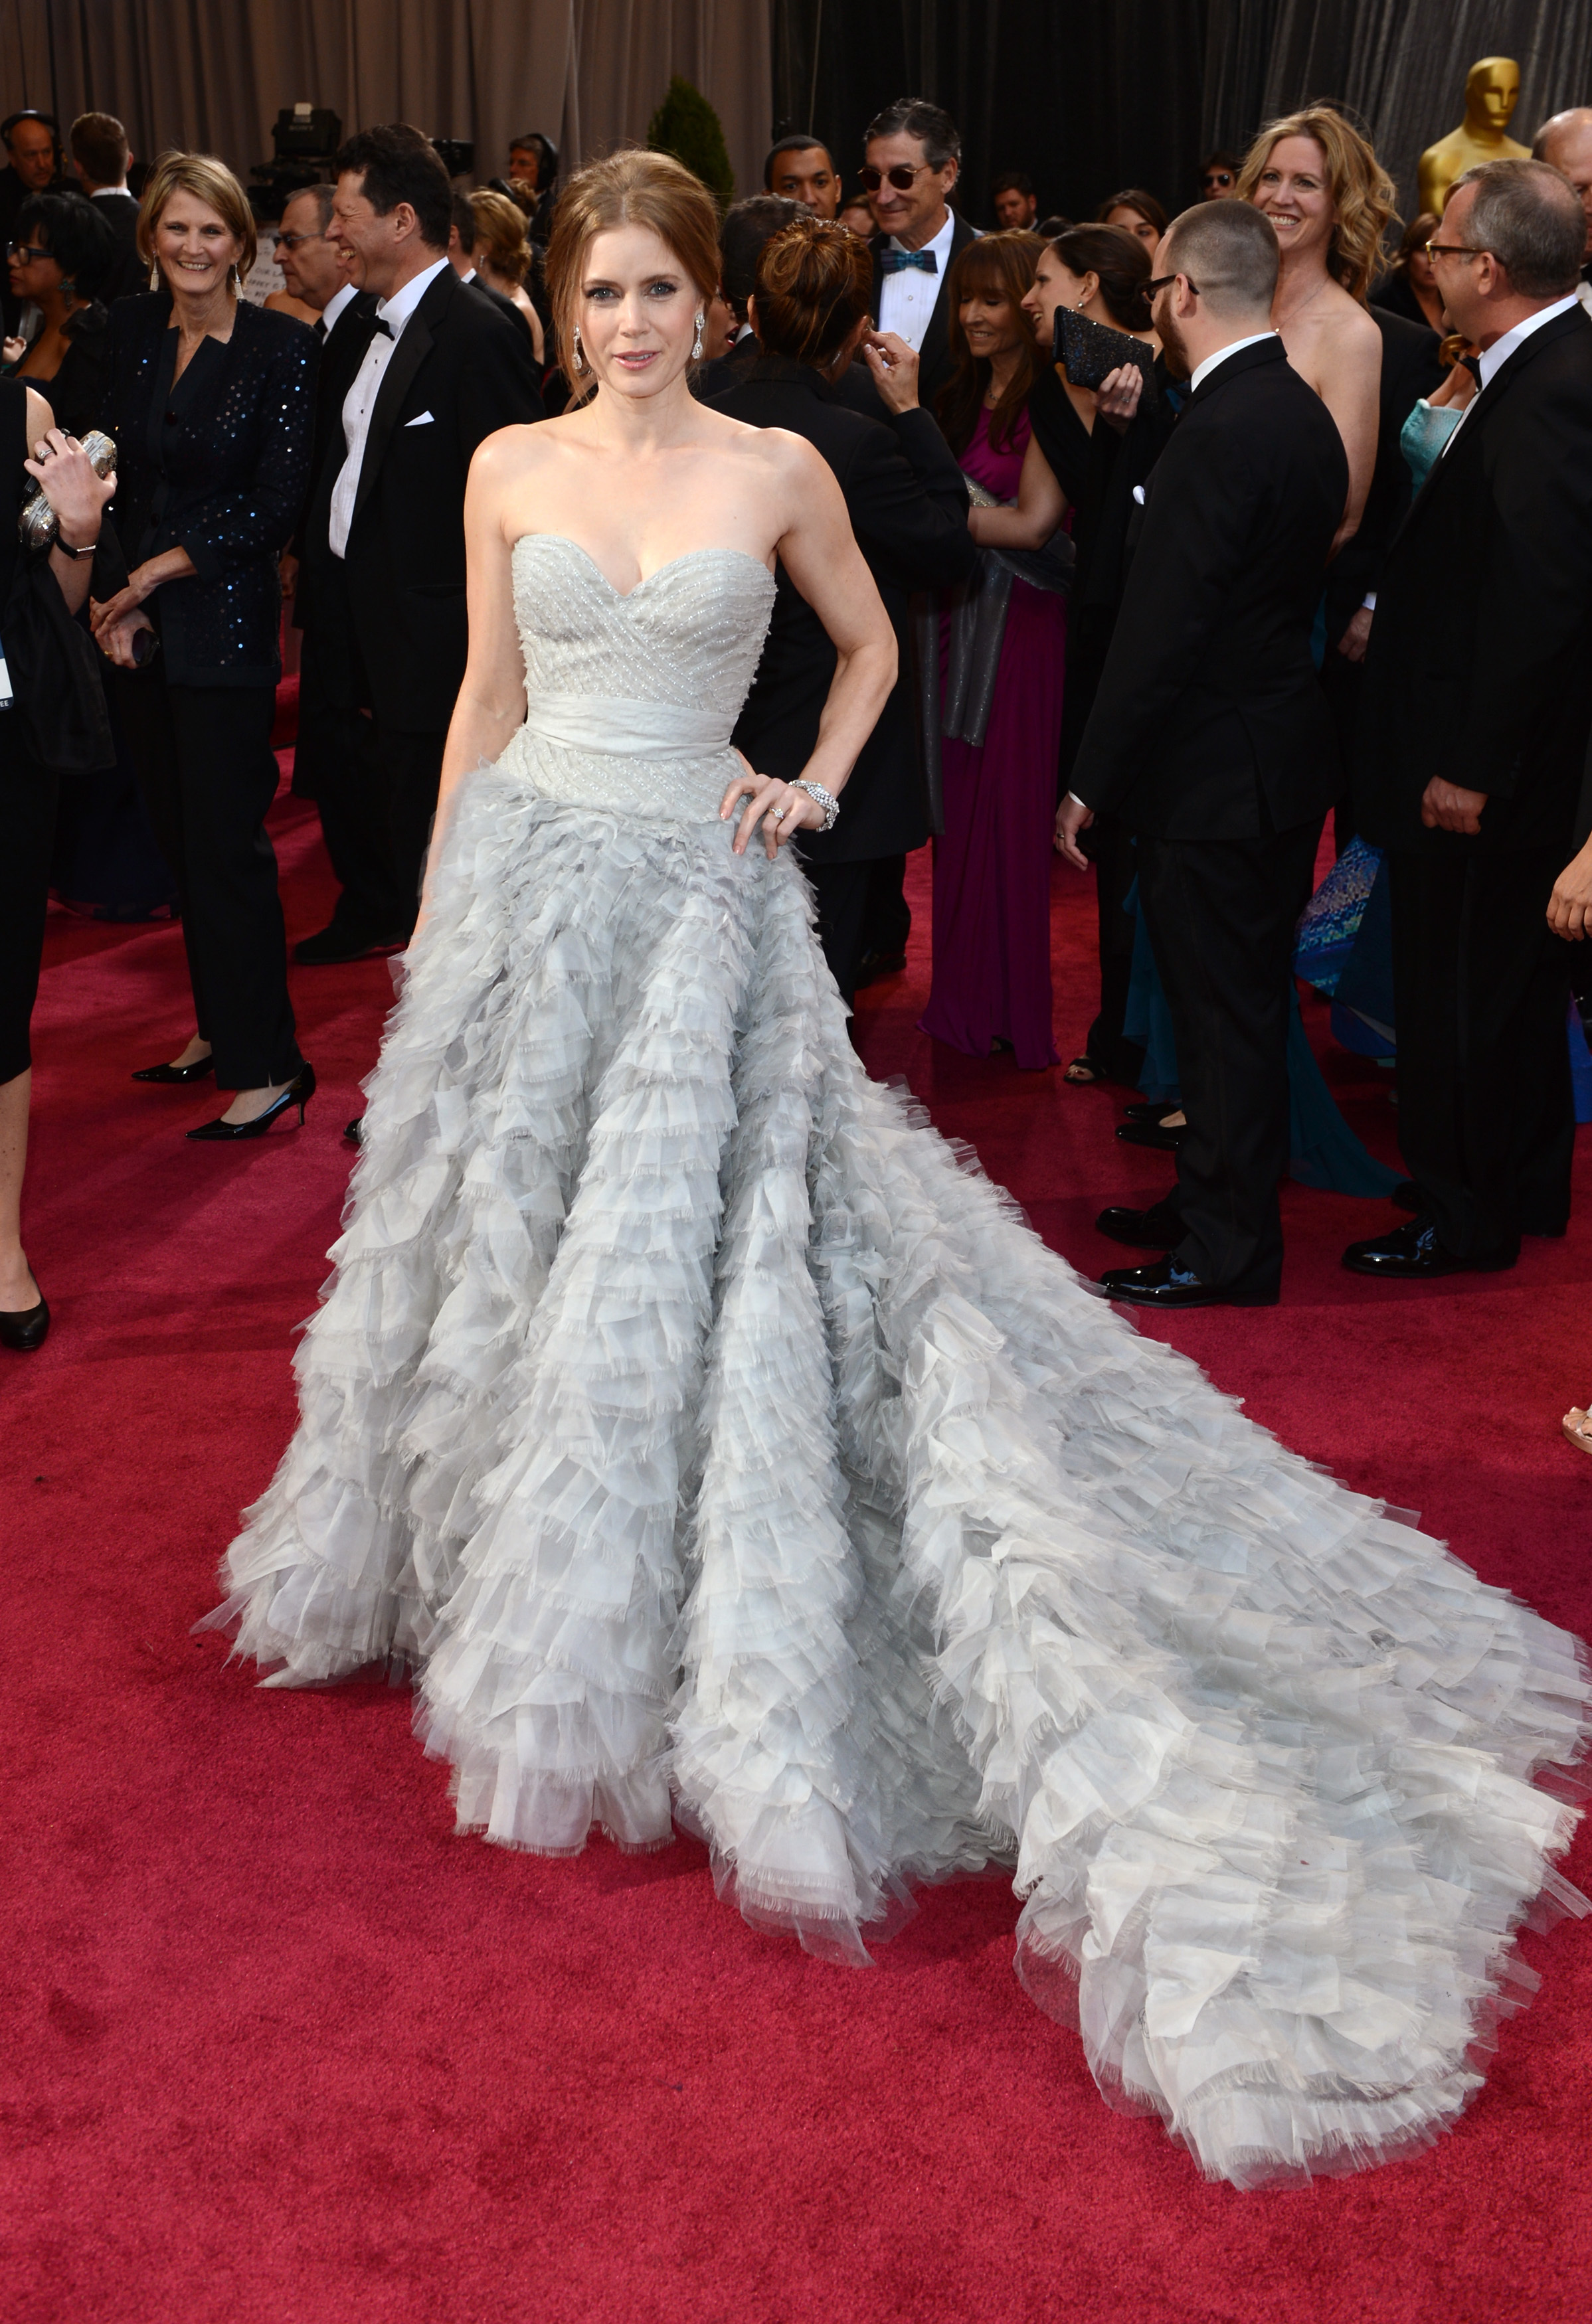 Amy Adams arrives at the 85th Annual Oscars in Hollywood on Feb. 24, 2013.